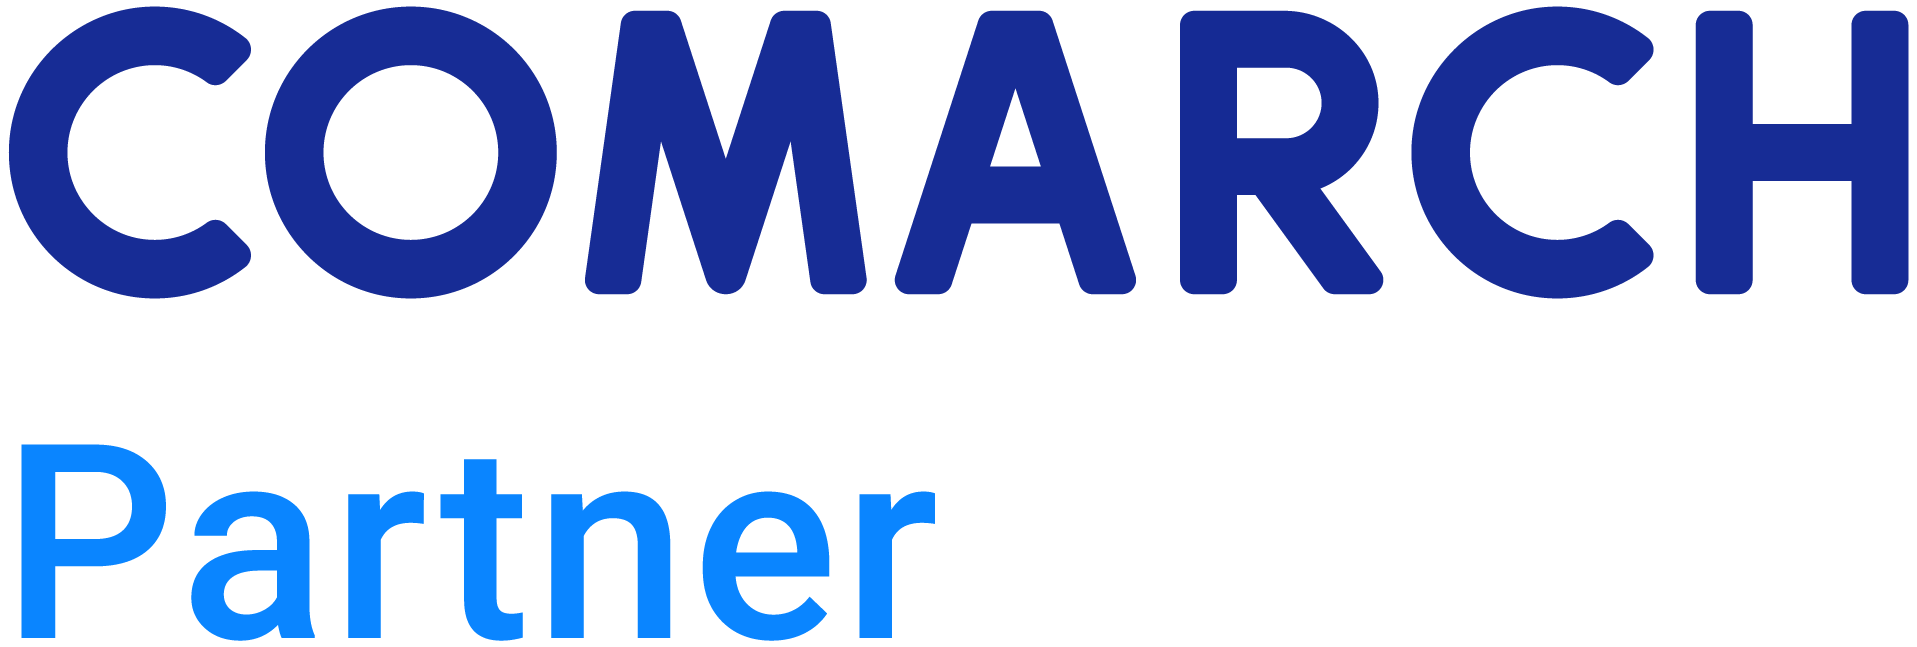 logo Comarch Partner